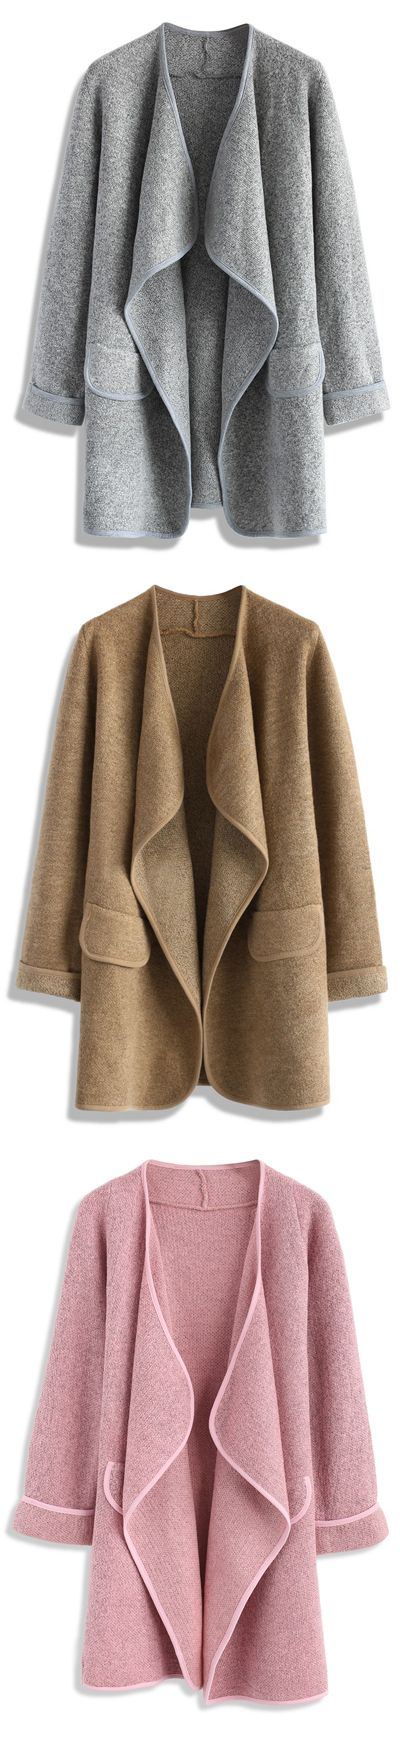 43% OFF! Only $39.90! Just Knitted Open Coat in Grey/Brown/Pink Chicwish.com